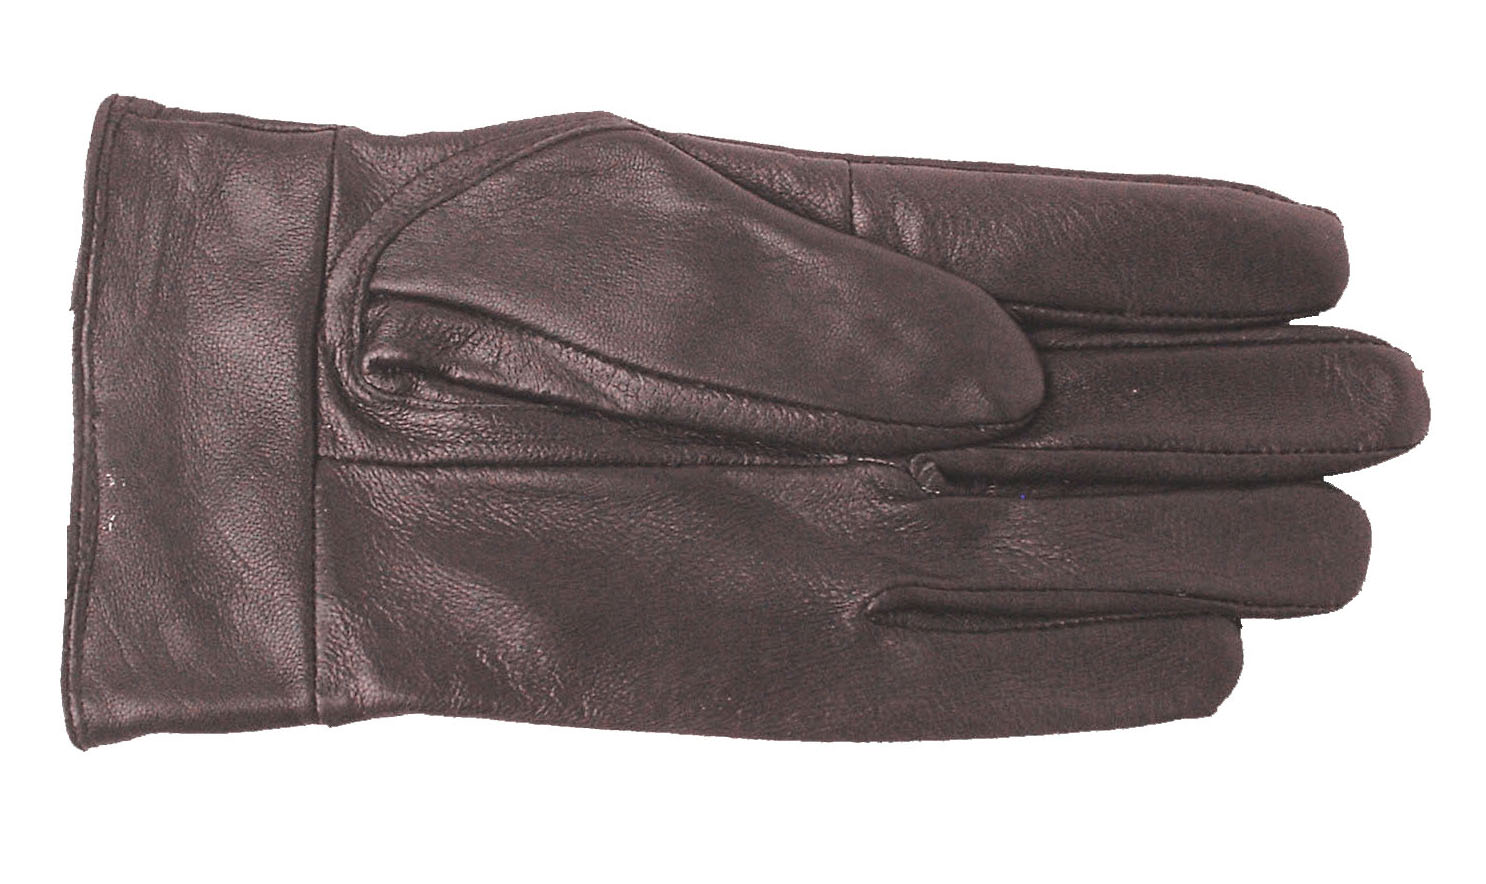 Adi Designs Women's Leather Two-button Gloves